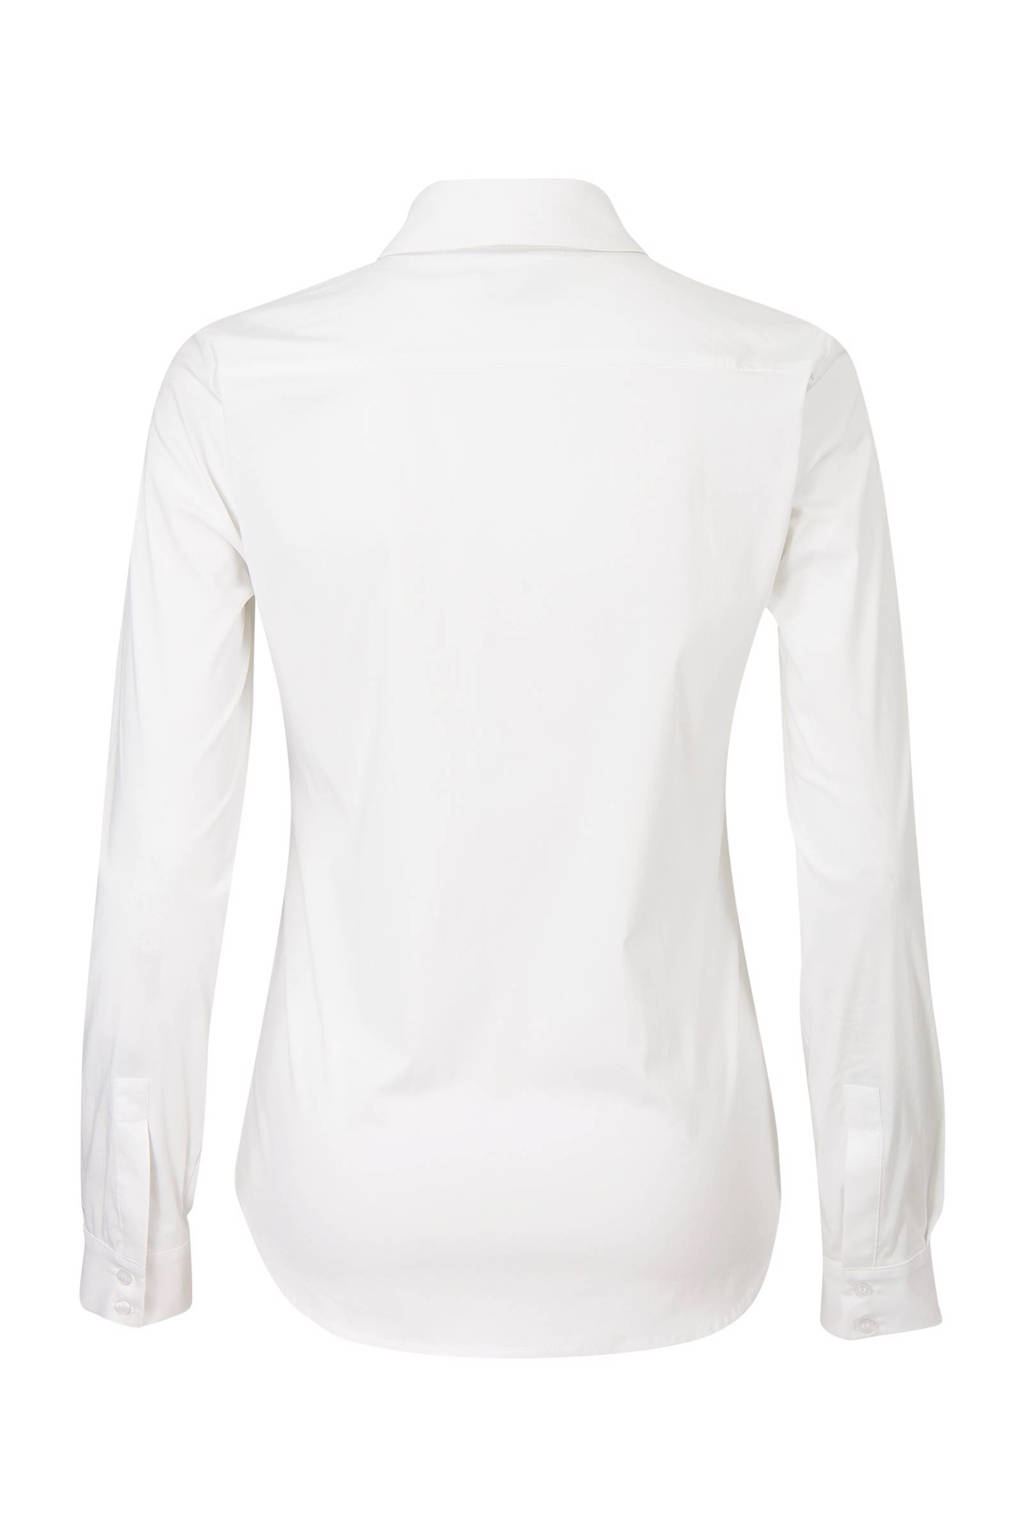 Promiss blouse wit stretch katoen, Wit